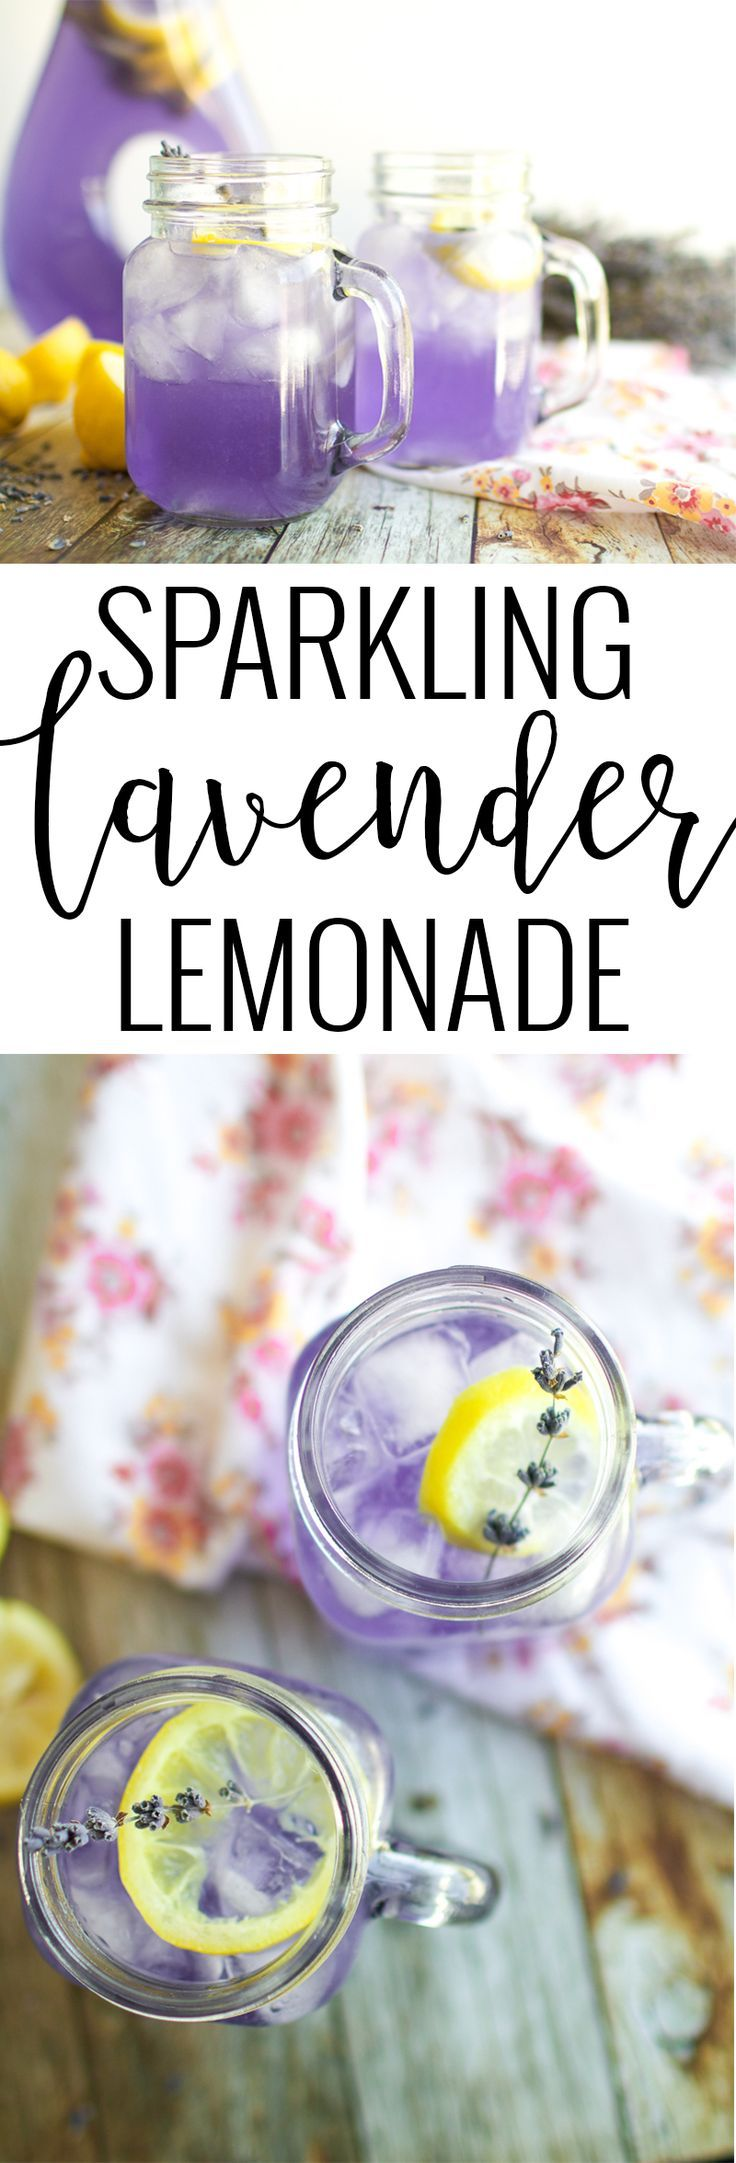 Sparkling Lavender Lemonade #summeralcoholicdrinks